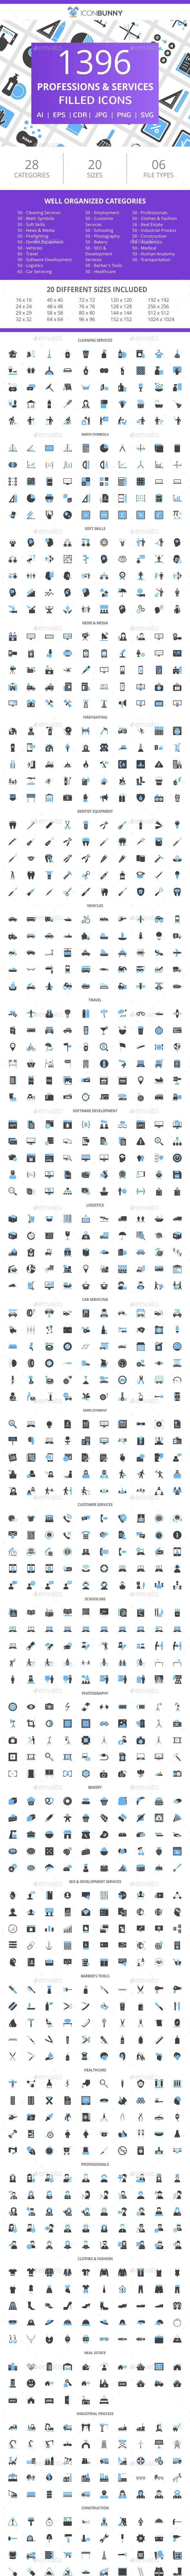 1396 Professions & Services Filled Blue & Black Icons - Icons